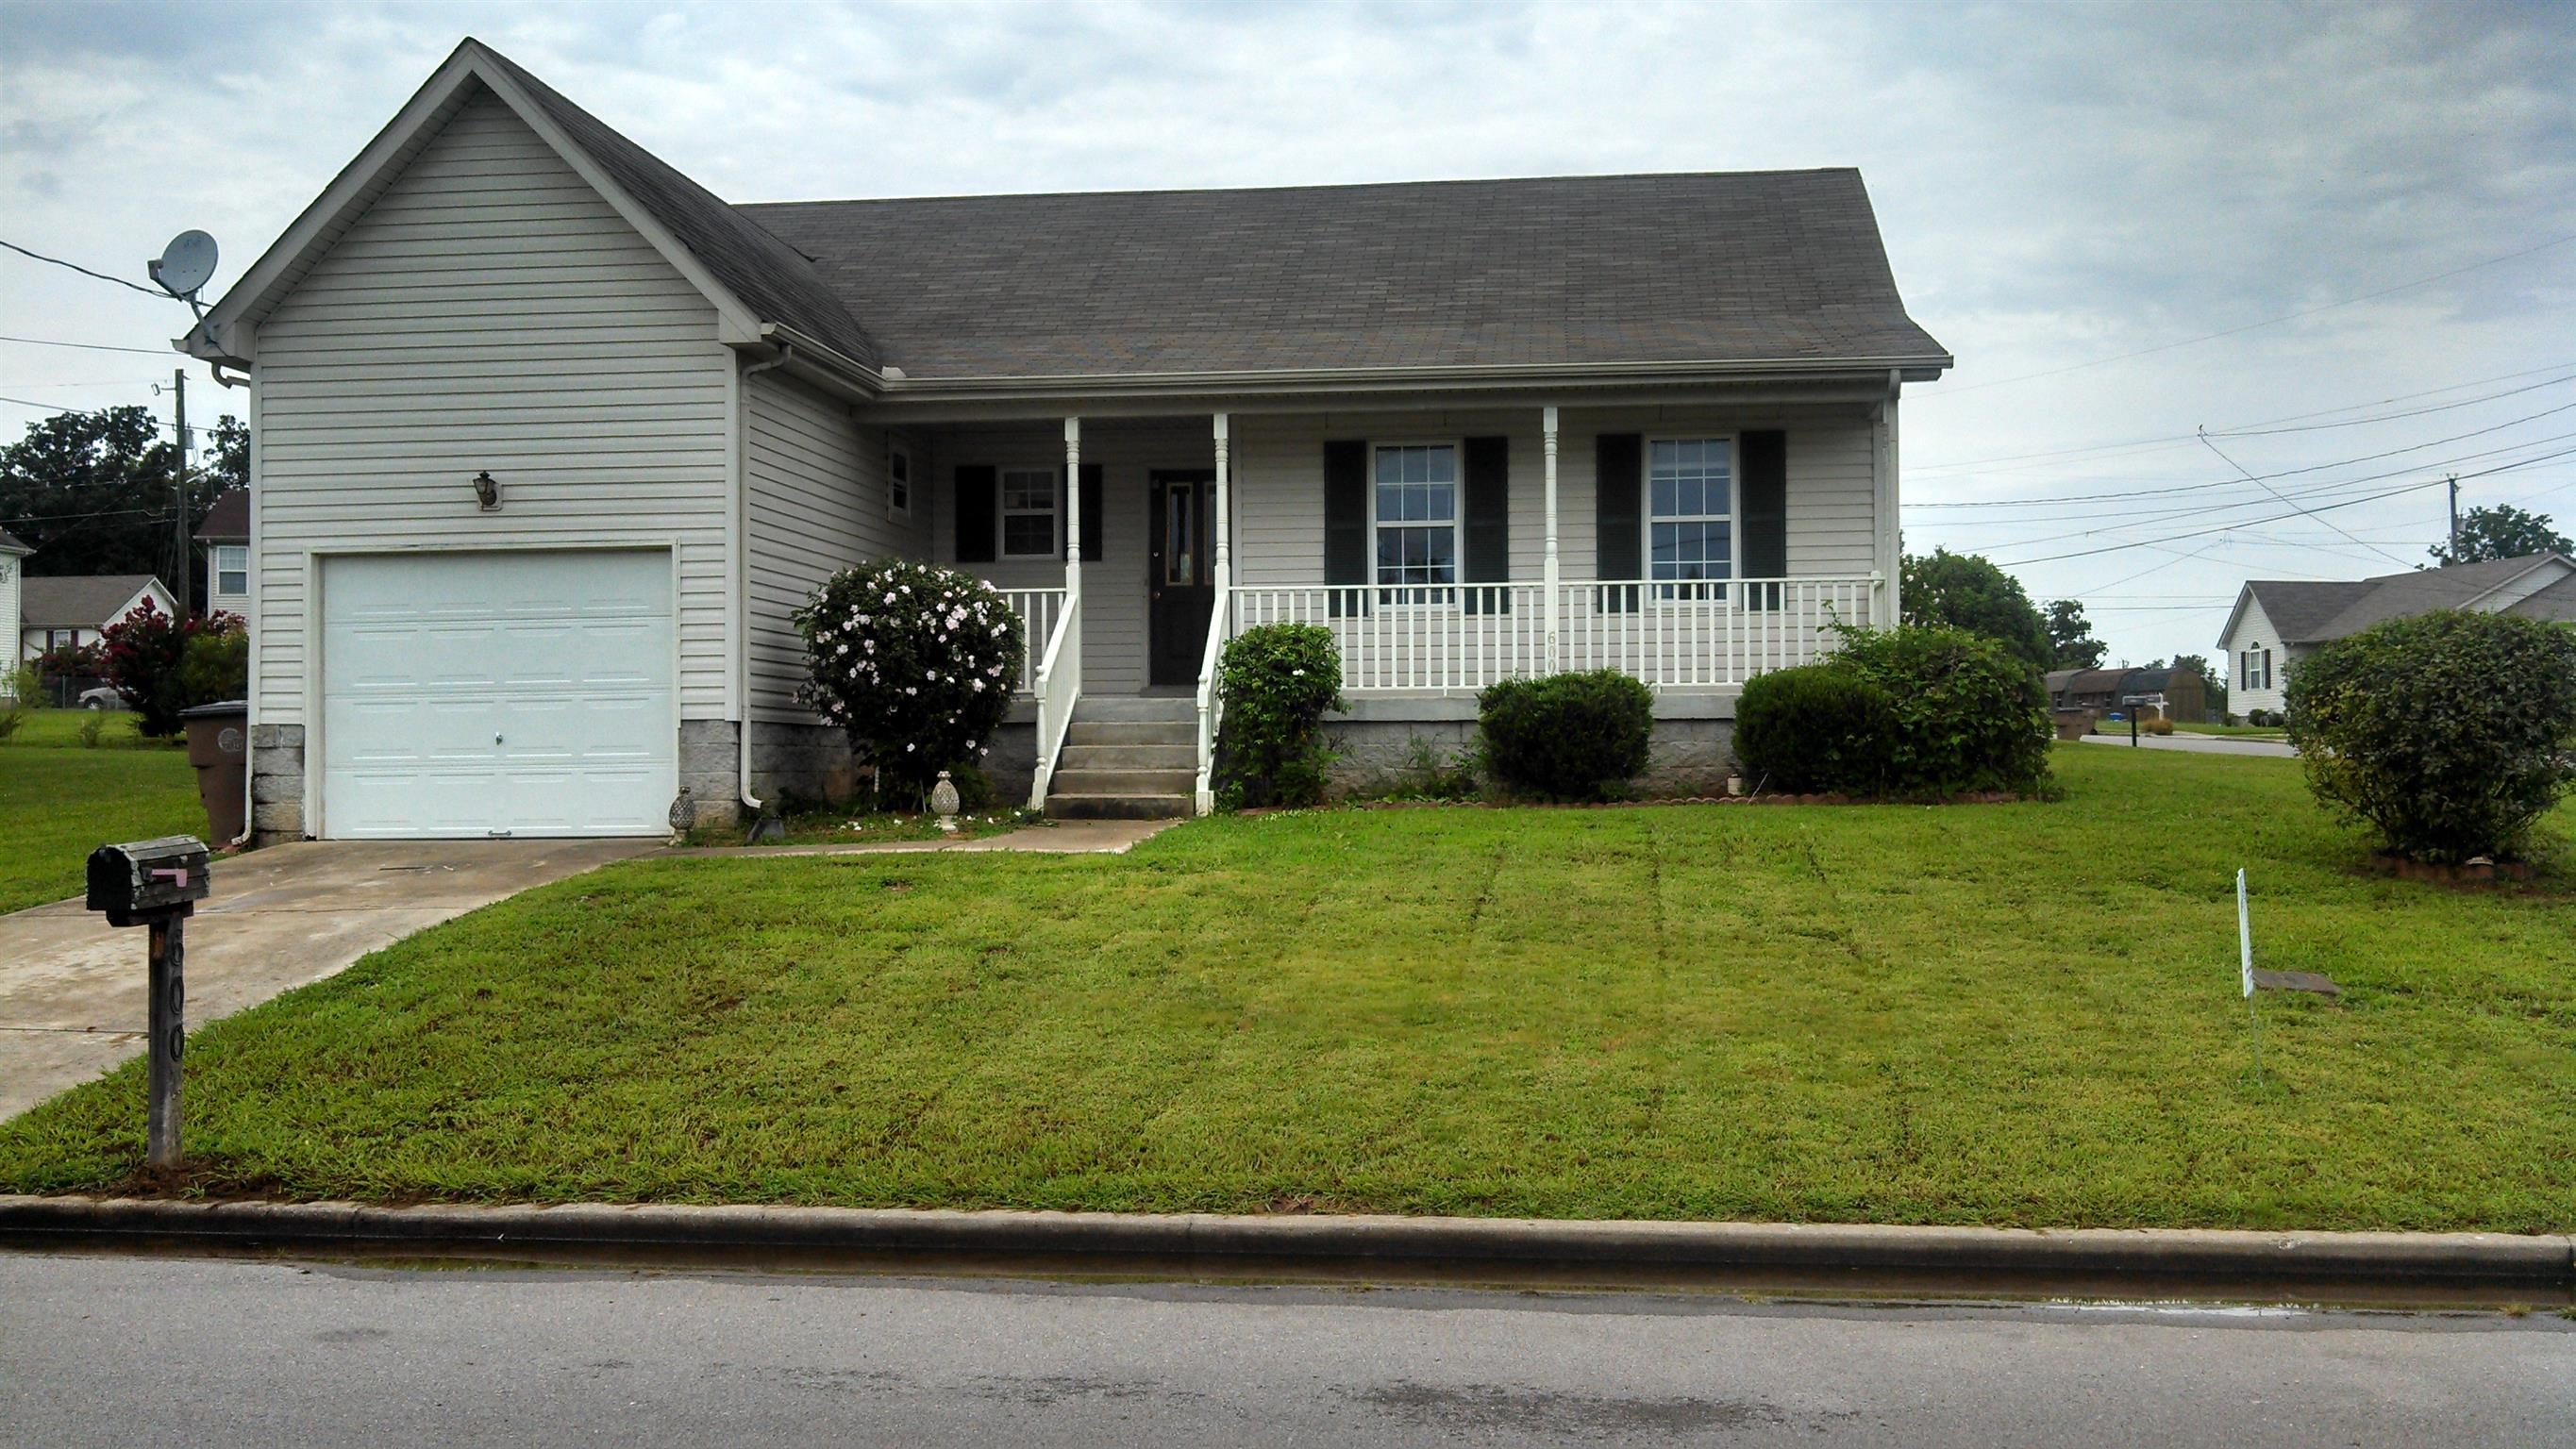 600 Big River Run, Nashville-Antioch in Davidson County County, TN 37013 Home for Sale